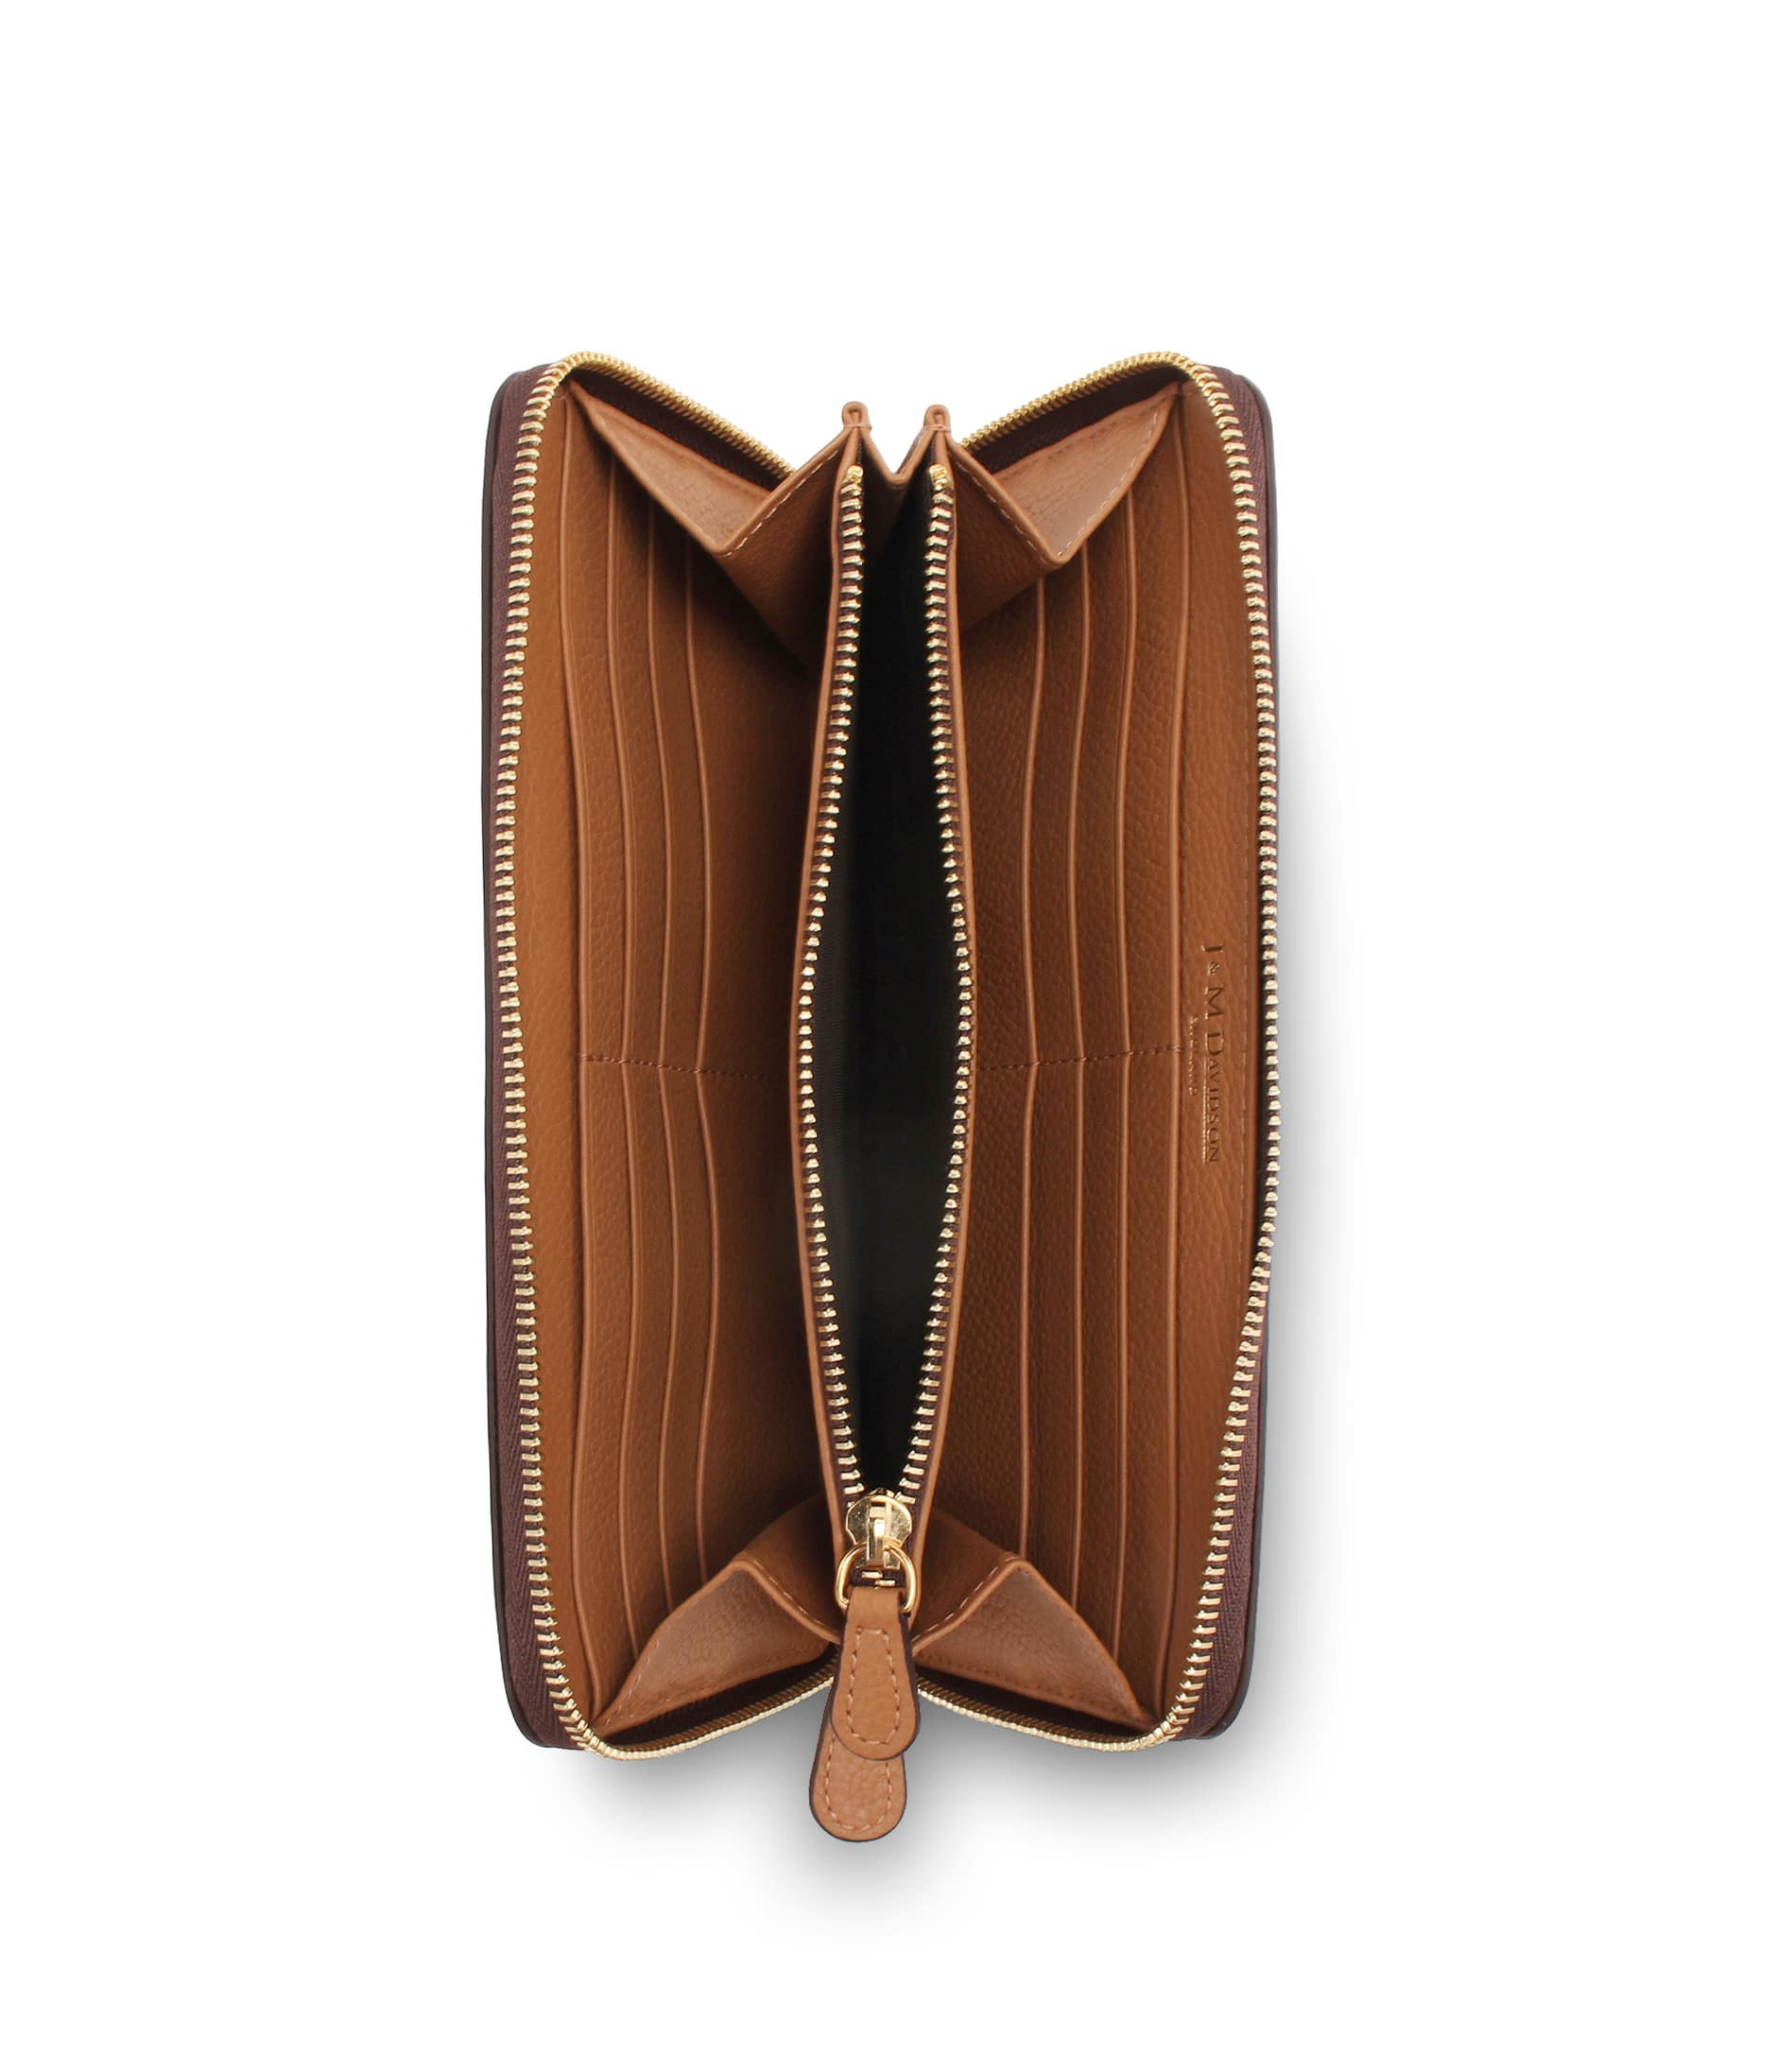 LONG ZIP WALLET 詳細画像 MOROCCAN BROWN 3